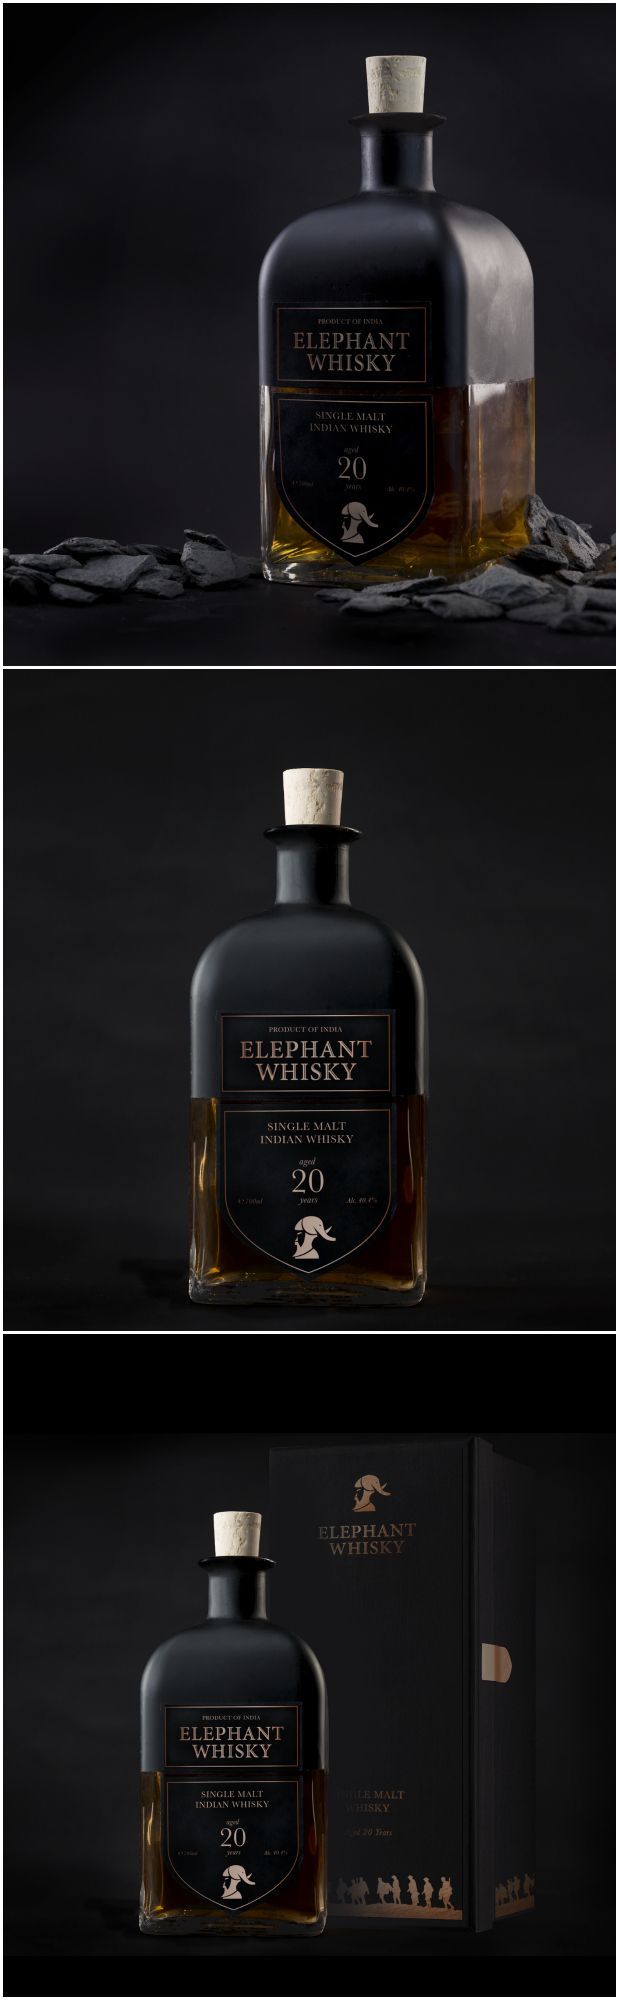 Evelyn Chee - Inspire to Strive: Elephant Whisky #packaging #design #diseño #empaques #embalagens #パッケージデザイン #emballage #bestpackagingdesign #worldpackagingdesign #worldpackagingdesignsociety